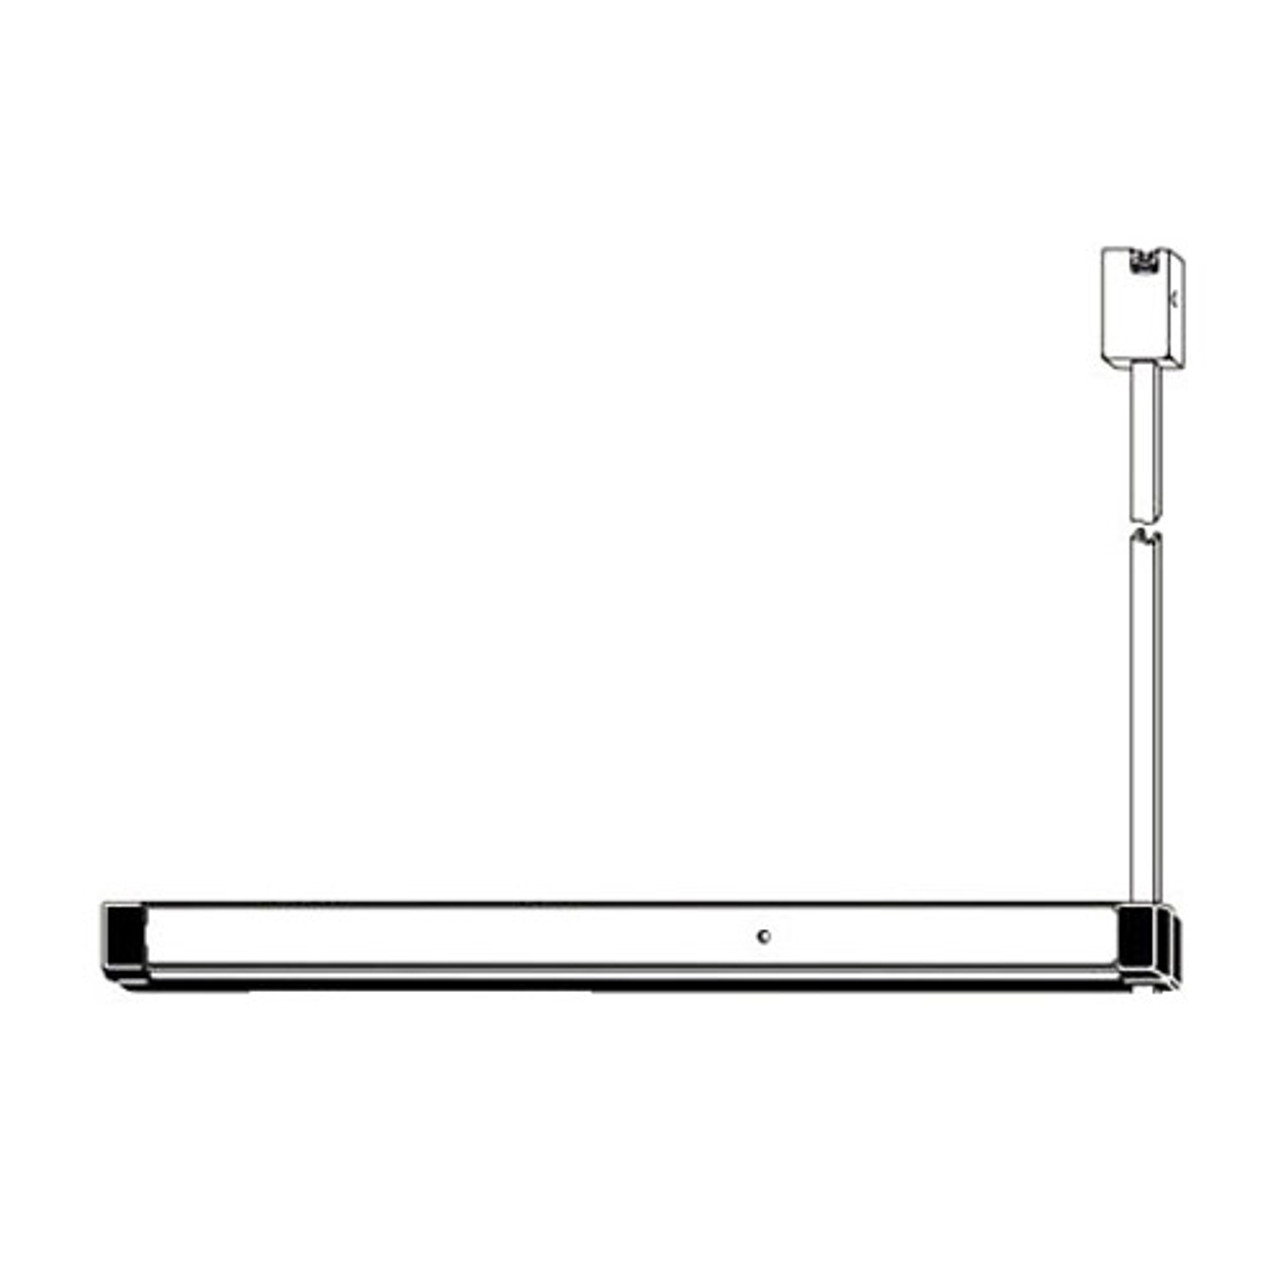 8200T-LRM-42-US3 Adams Rite Narrow Stile Surface Vertical Rod Exit Device in Bright Brass